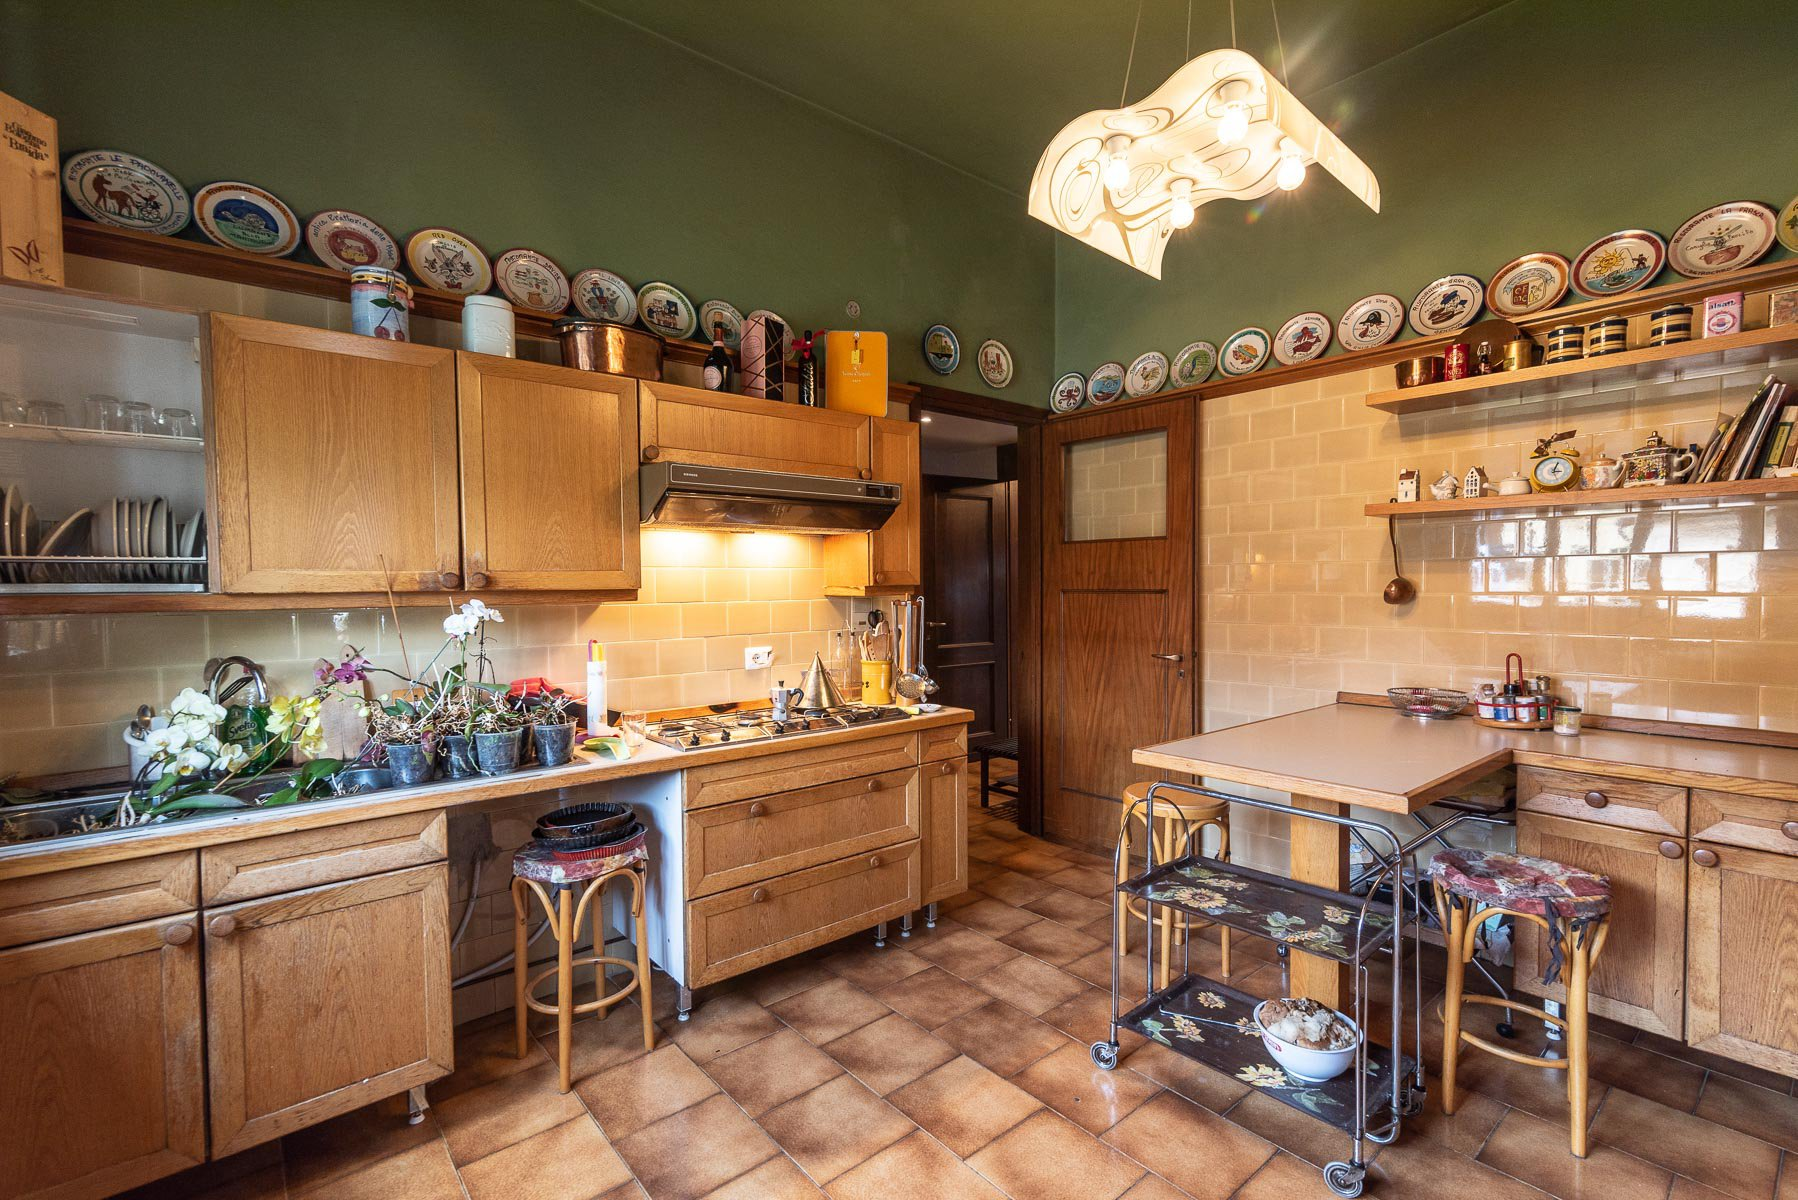 Elegant villa with garden for sale in Stresa - wooden kitchen